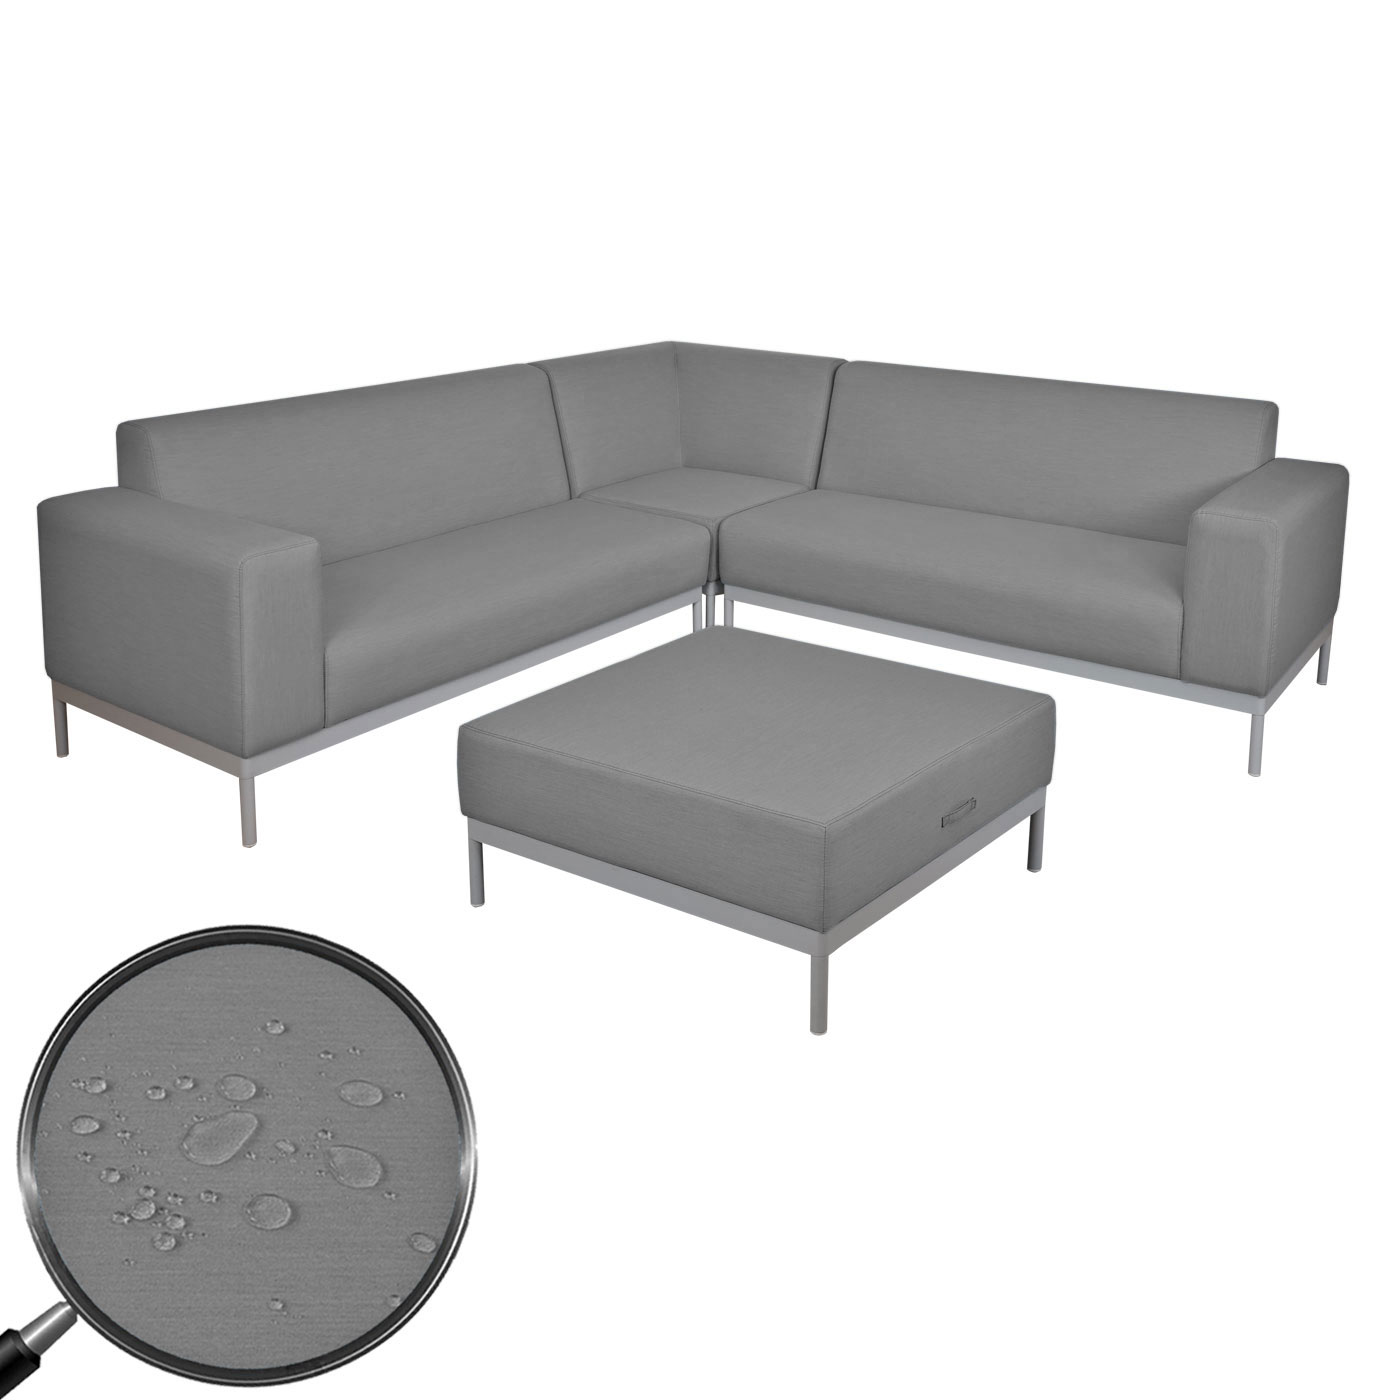 alu garten garnitur hwc c47 sofa lounge set textil outdoor wasserabweisend grau ohne ablage. Black Bedroom Furniture Sets. Home Design Ideas